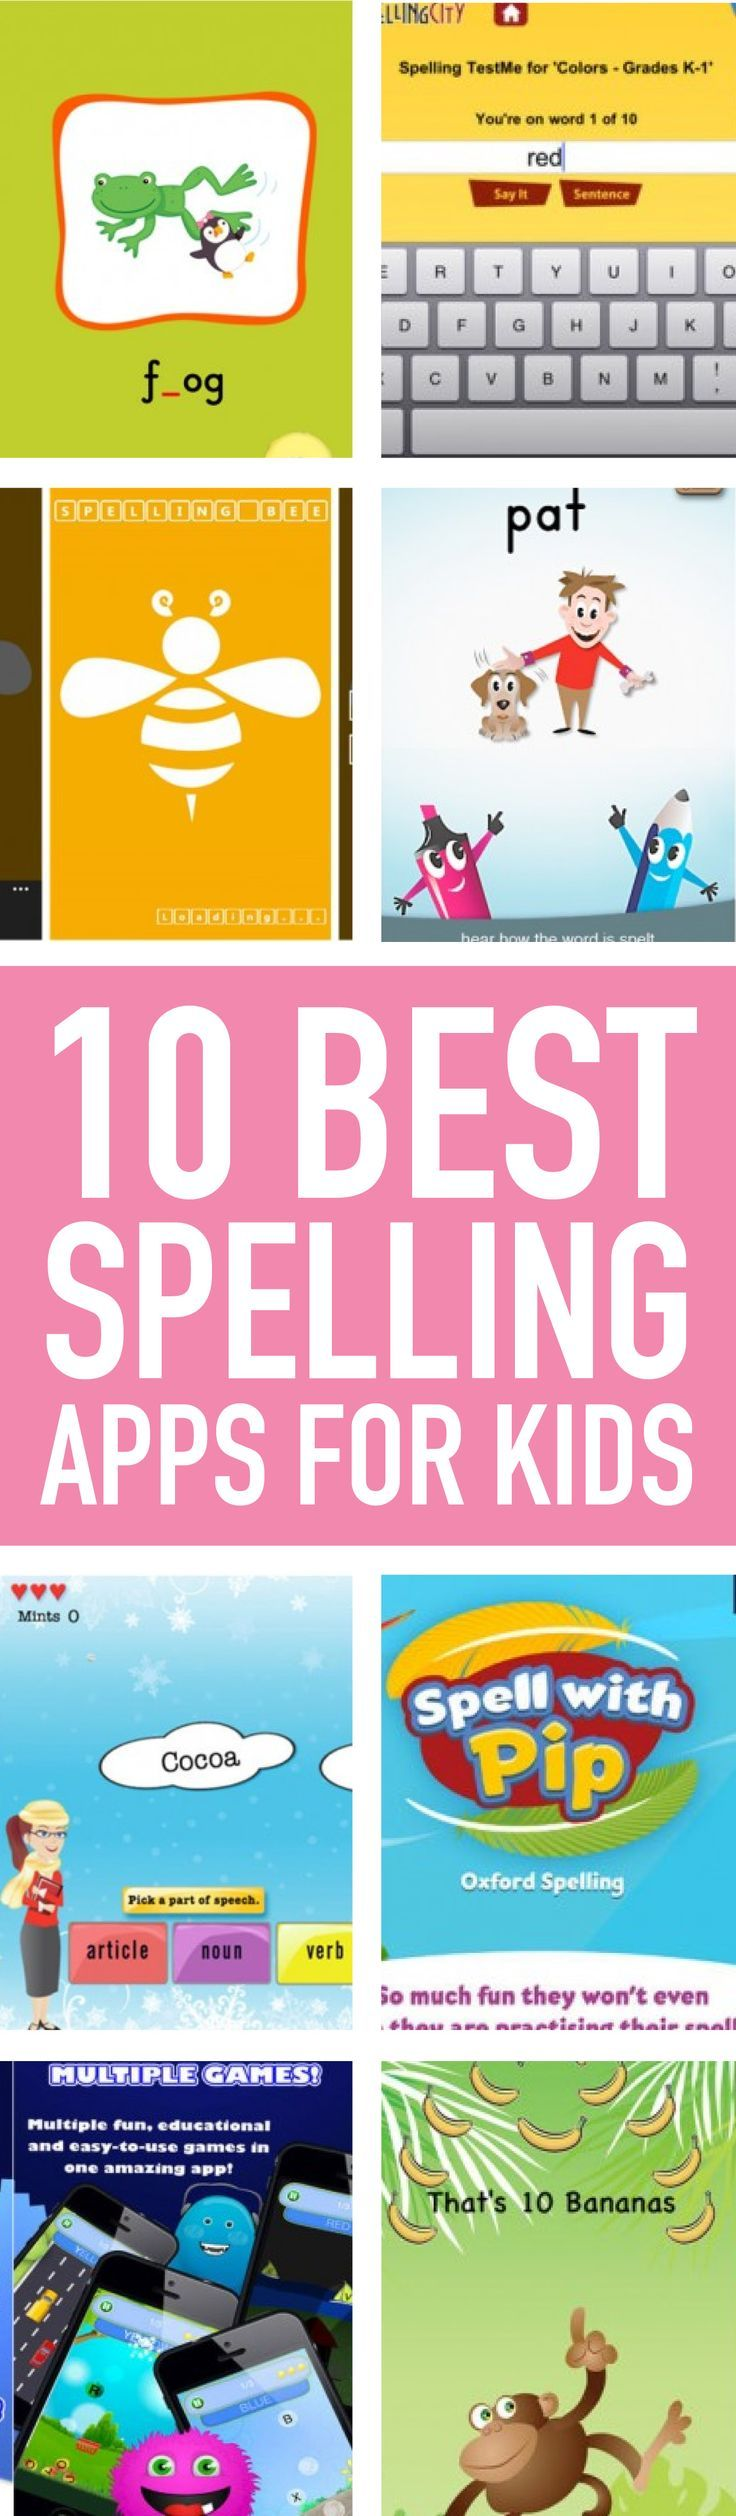 Spelling Books for Adults - SpellingRules.com - Dyslexia Ends